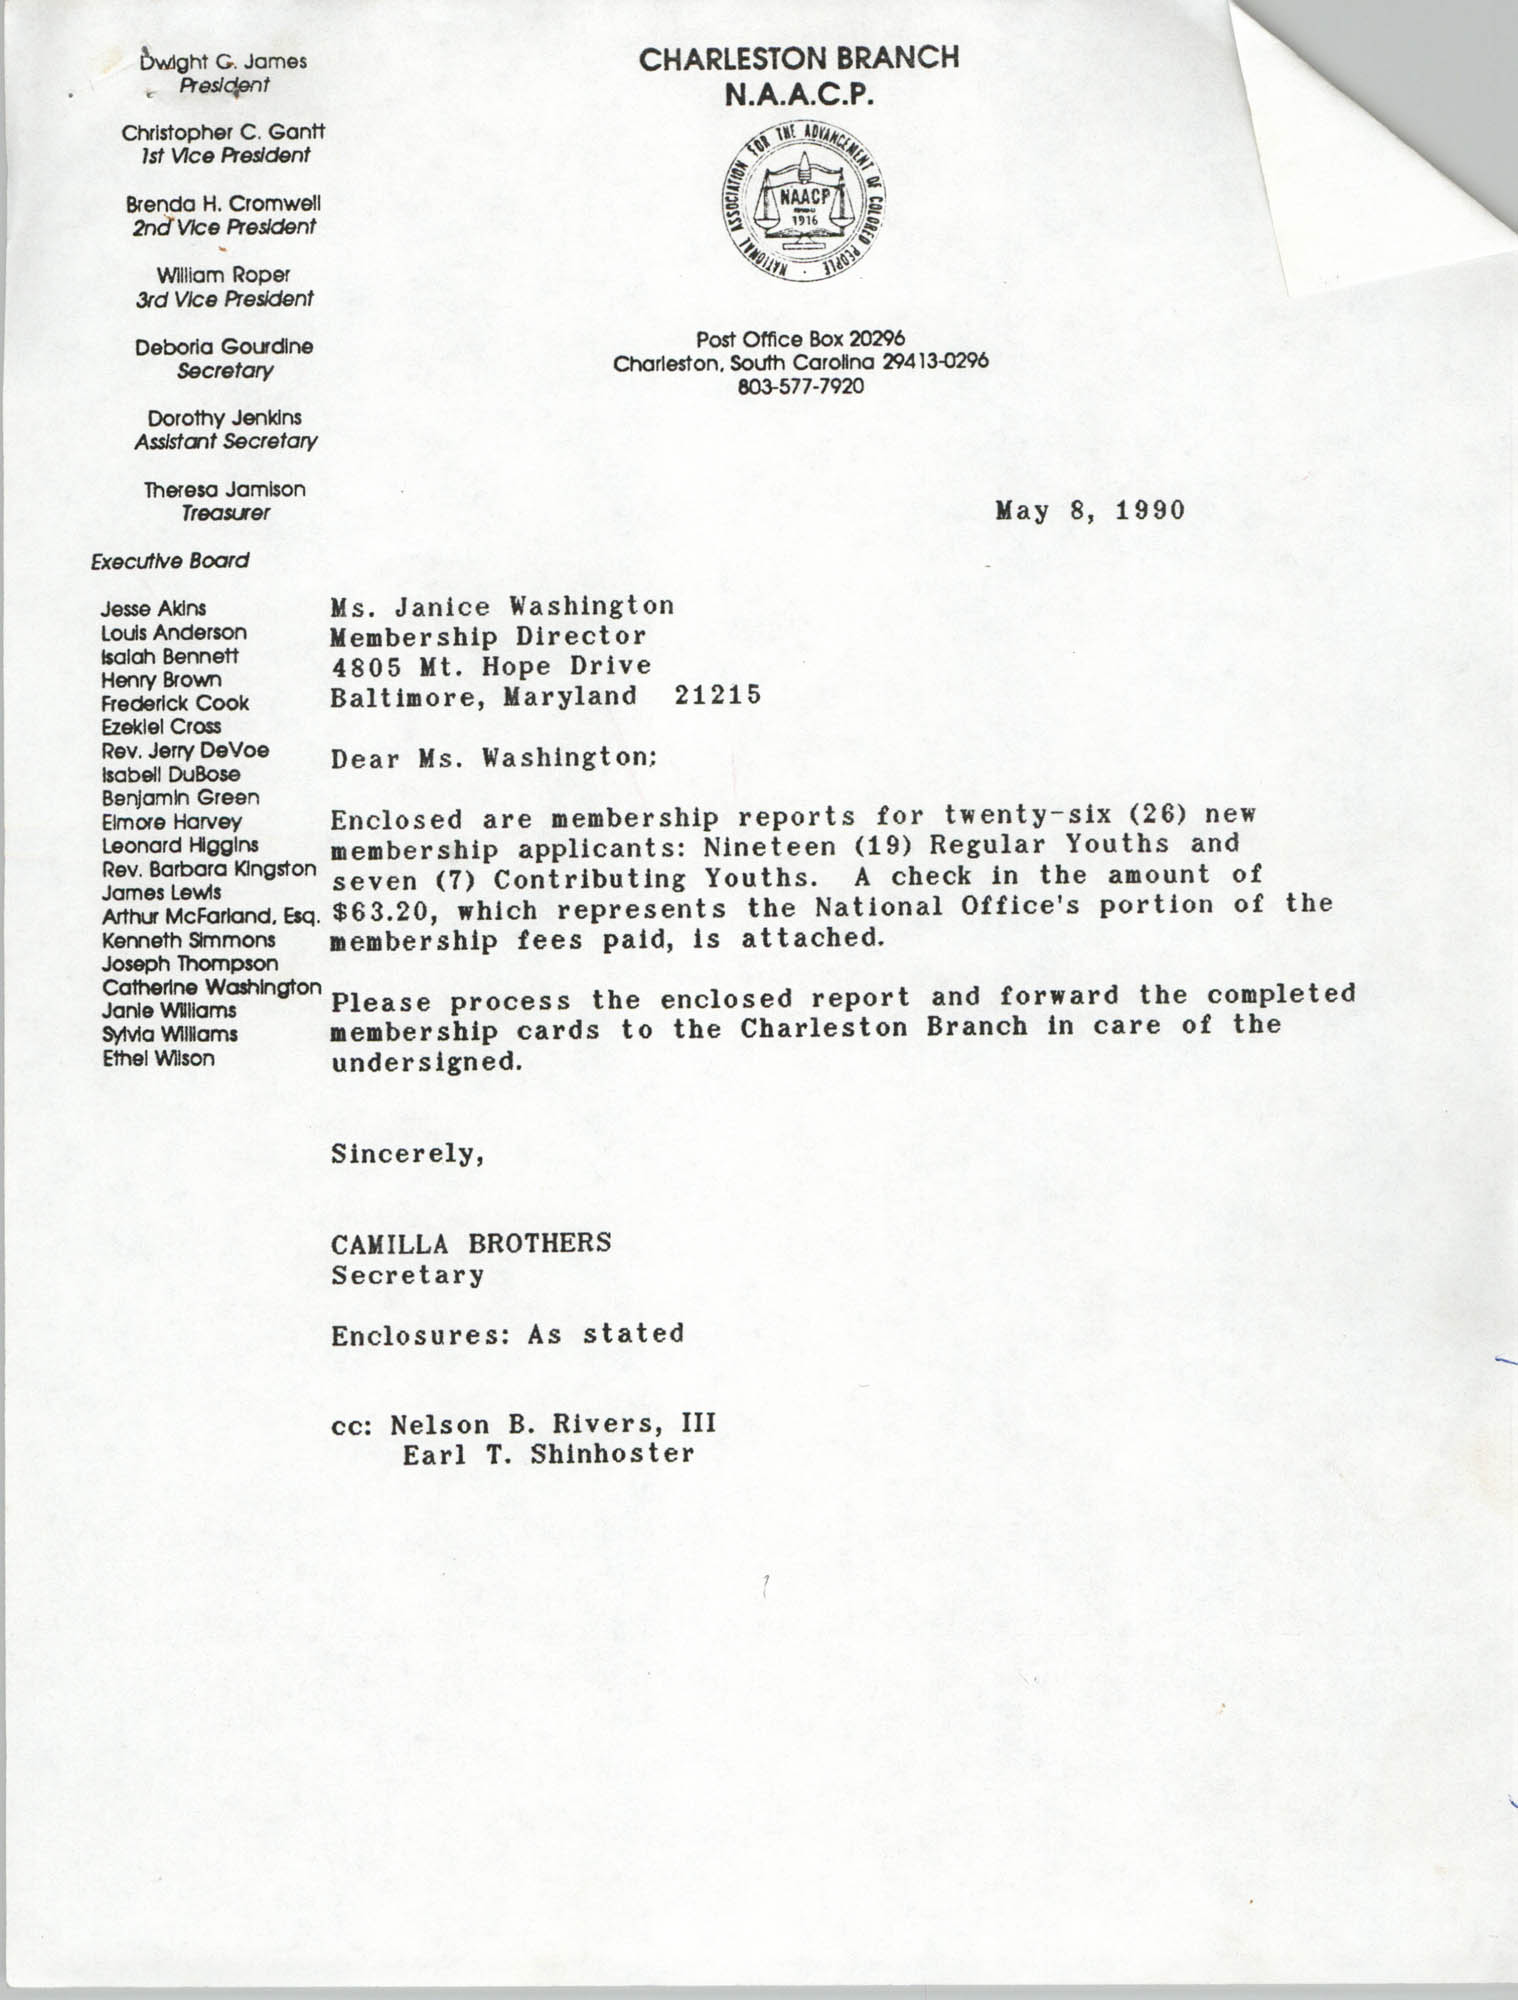 Letter from Camilla Brothers to Janice Washington, NAACP, May 8, 1990